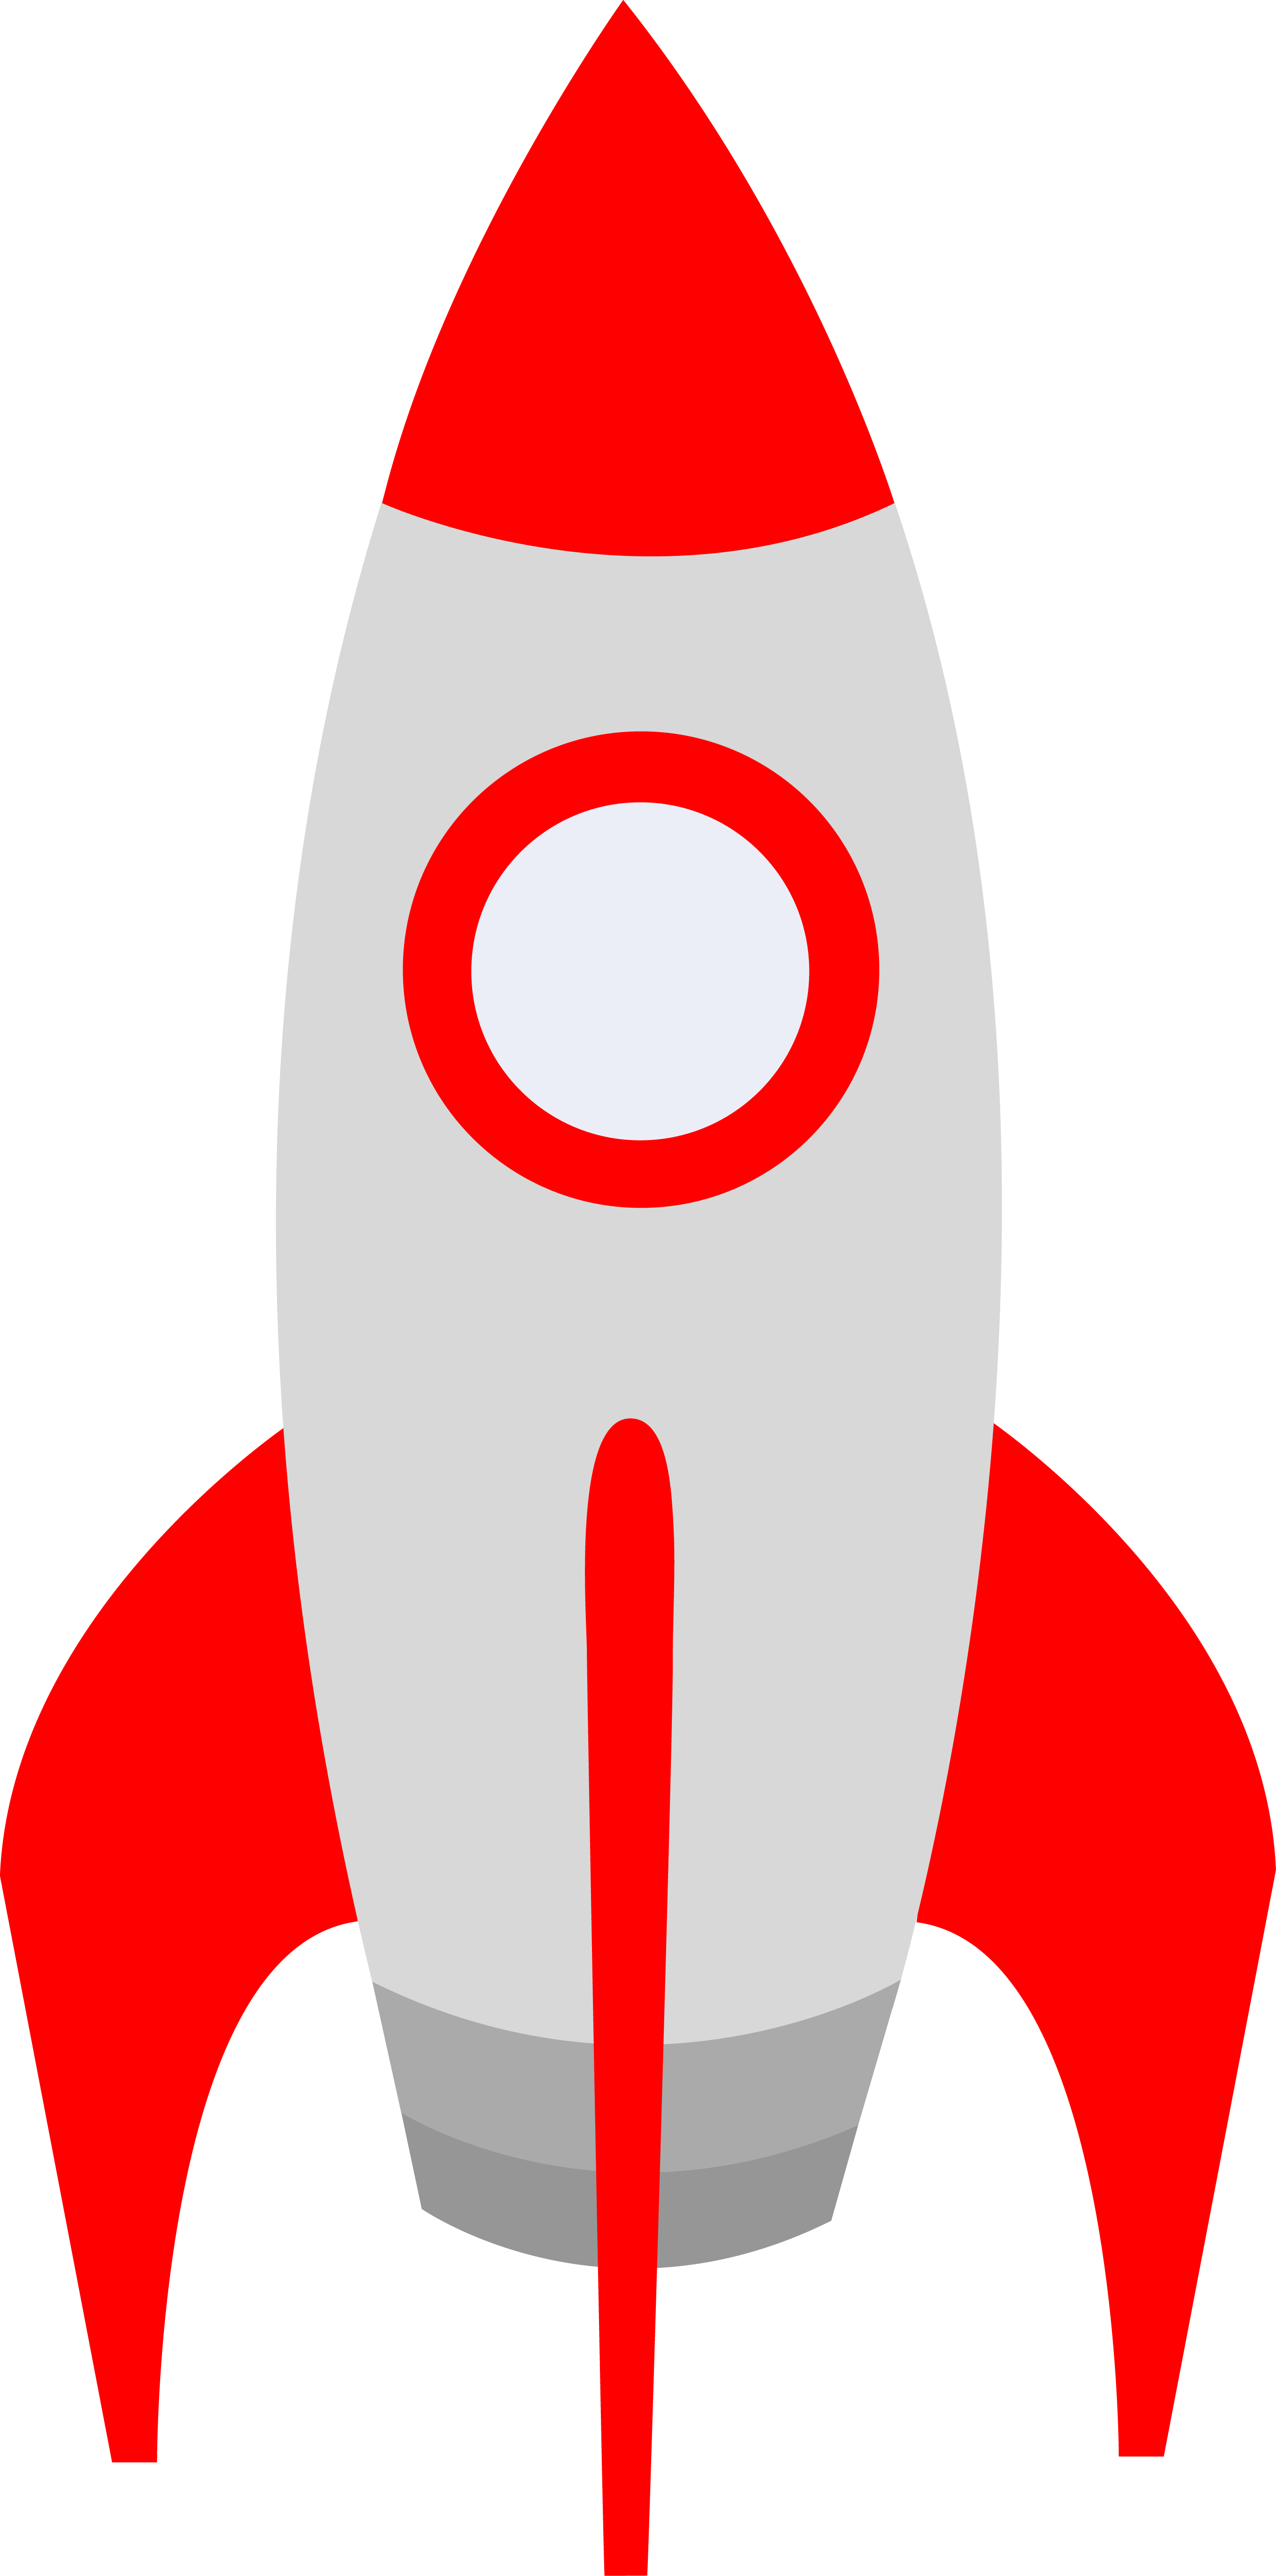 Small spaceship clipart svg library Pin by Ryan Mack on Tattoo Inspiration | Space rocket ... svg library